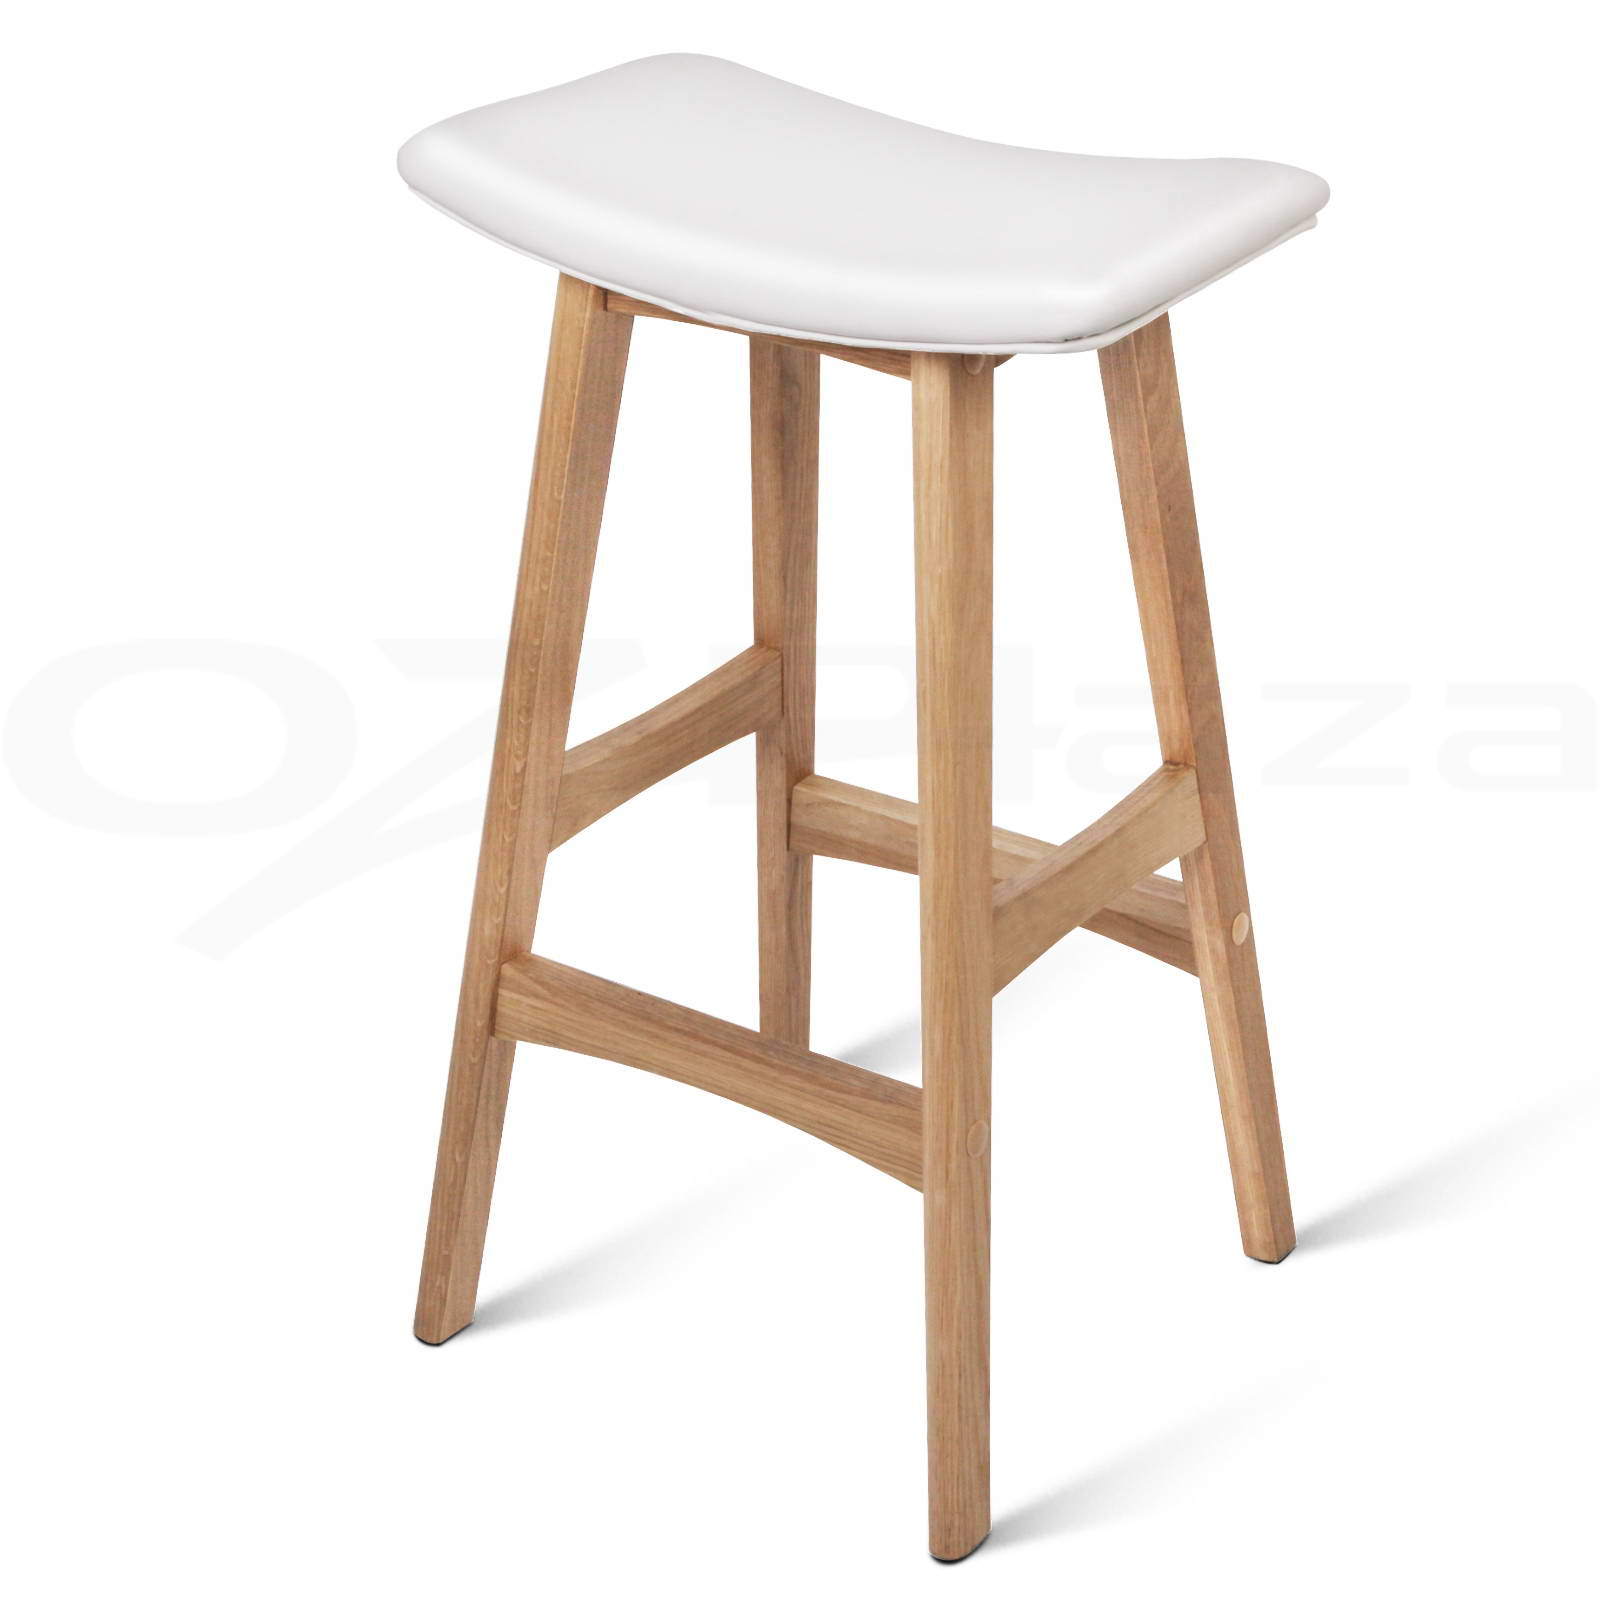 Wooden Kitchen Stools 4x Oak Wood Bar Stools Wooden Dining Chairs Kitchen Side